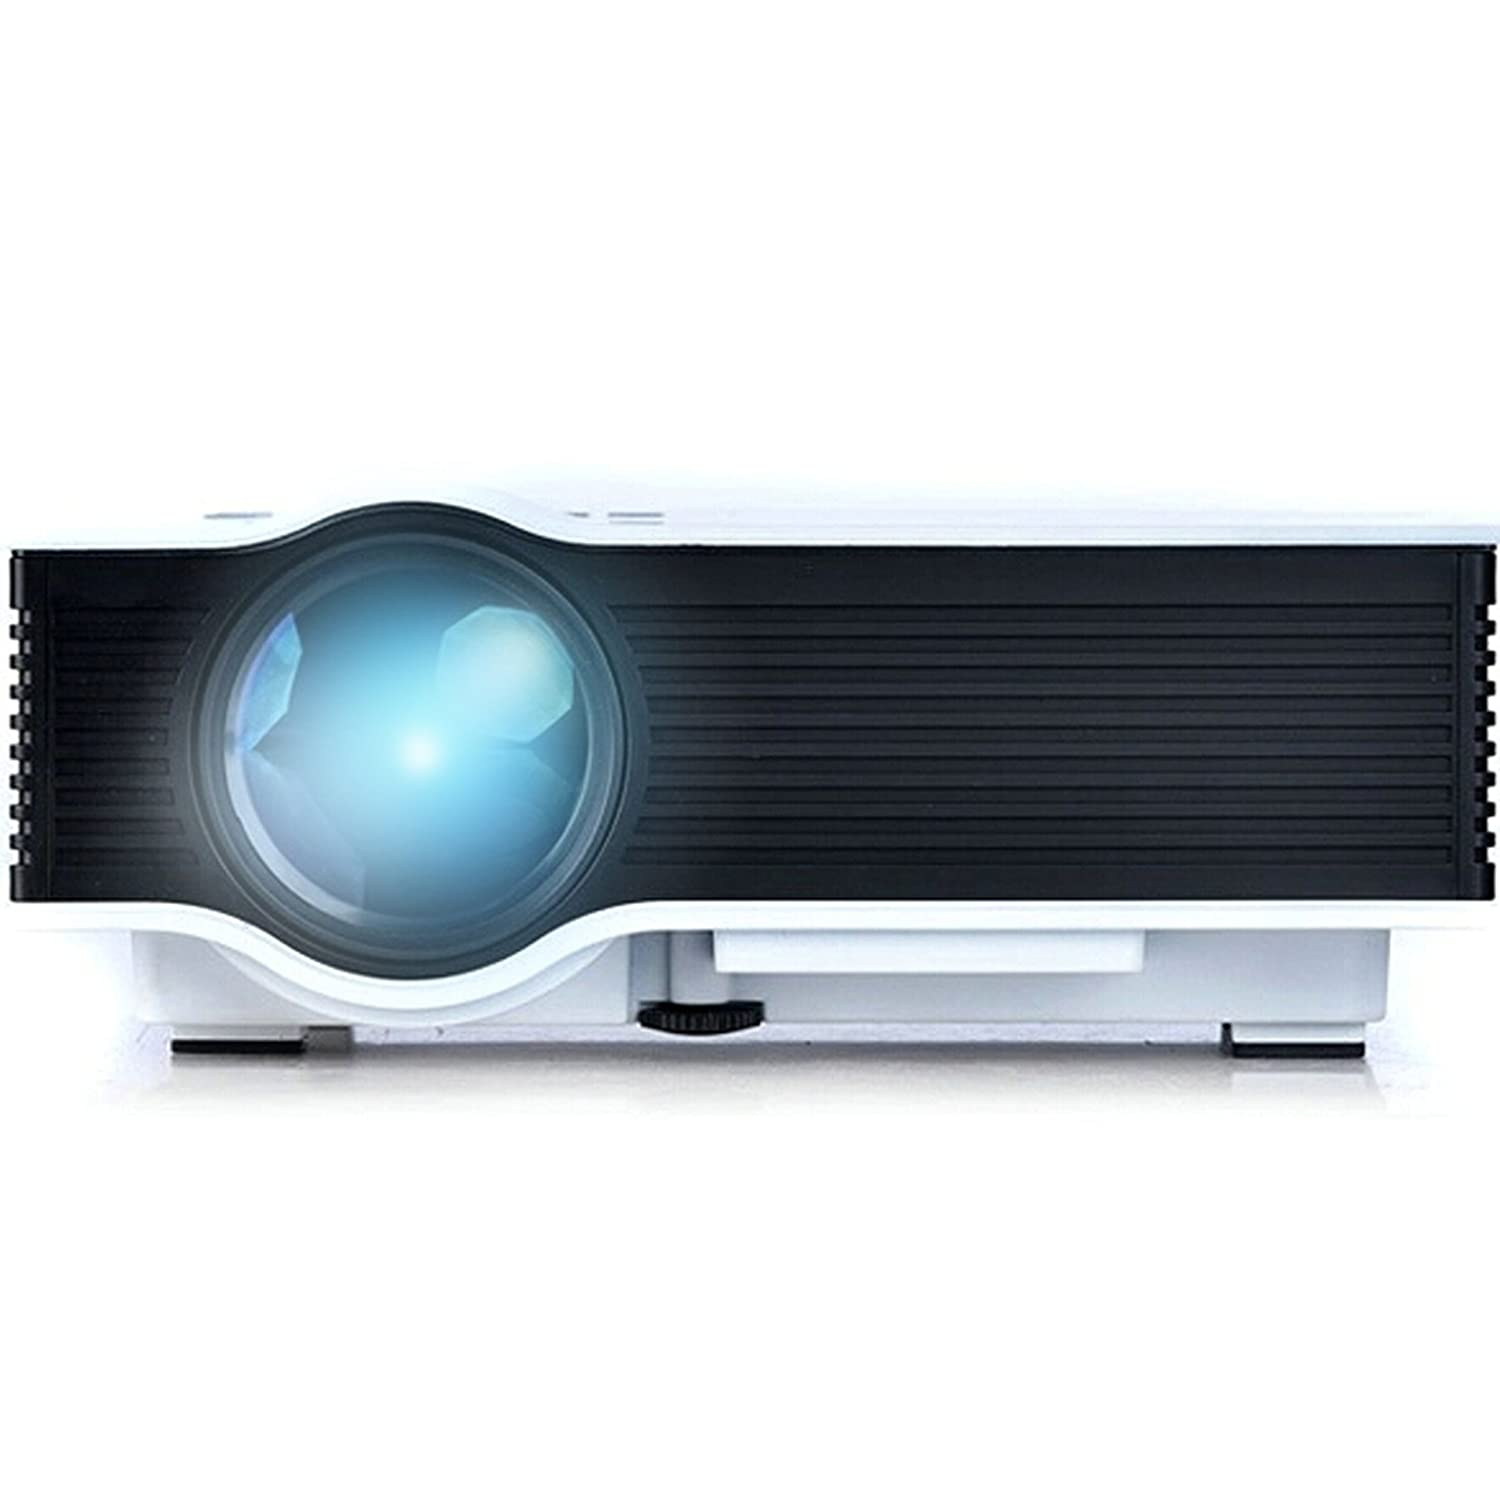 ERISAN Updated UC40 Pro Mini Portable LCD LED Home Theater Cinema Game Projector HD 1080P 800 Lumens IP/IR/USB/SD/HDMI